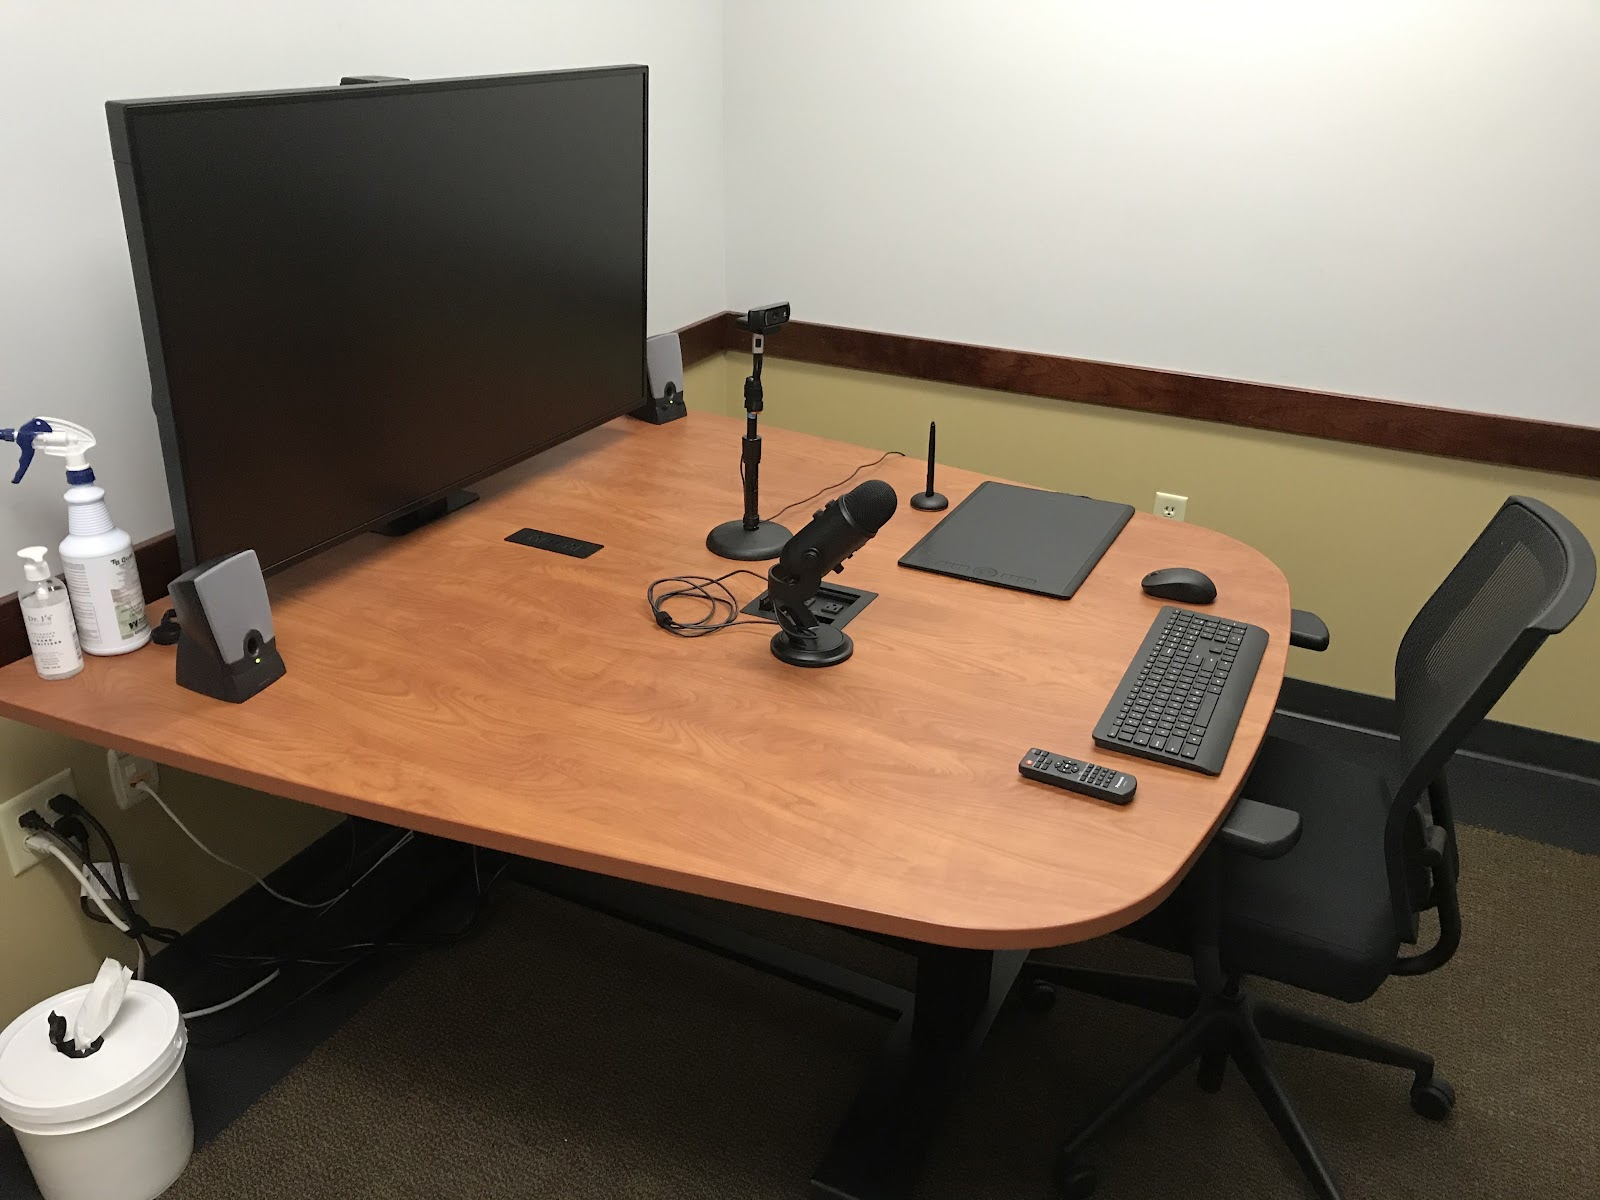 The 1329 recording studio, with monitor, camera, and mic